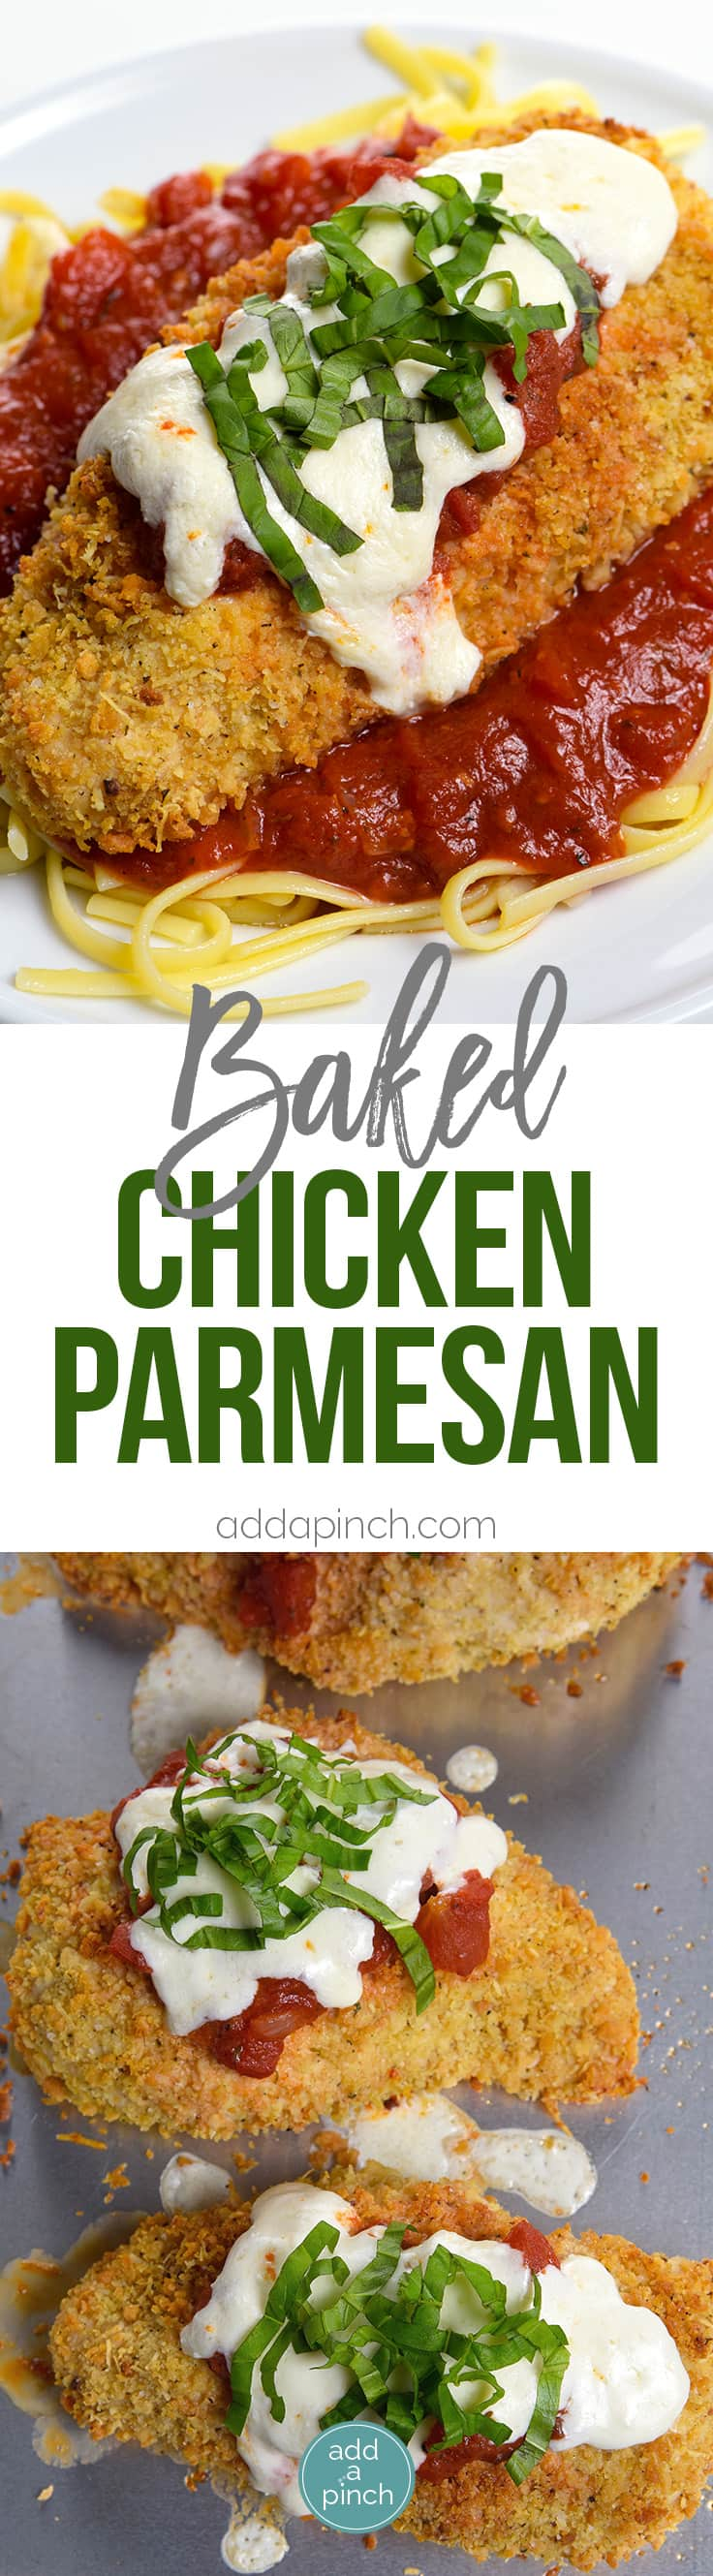 Baked Chicken Parmesan Recipe - This baked chicken parmesan recipe includes everything you love about chicken parmesan without all the guilt or mess! // addapinch.com